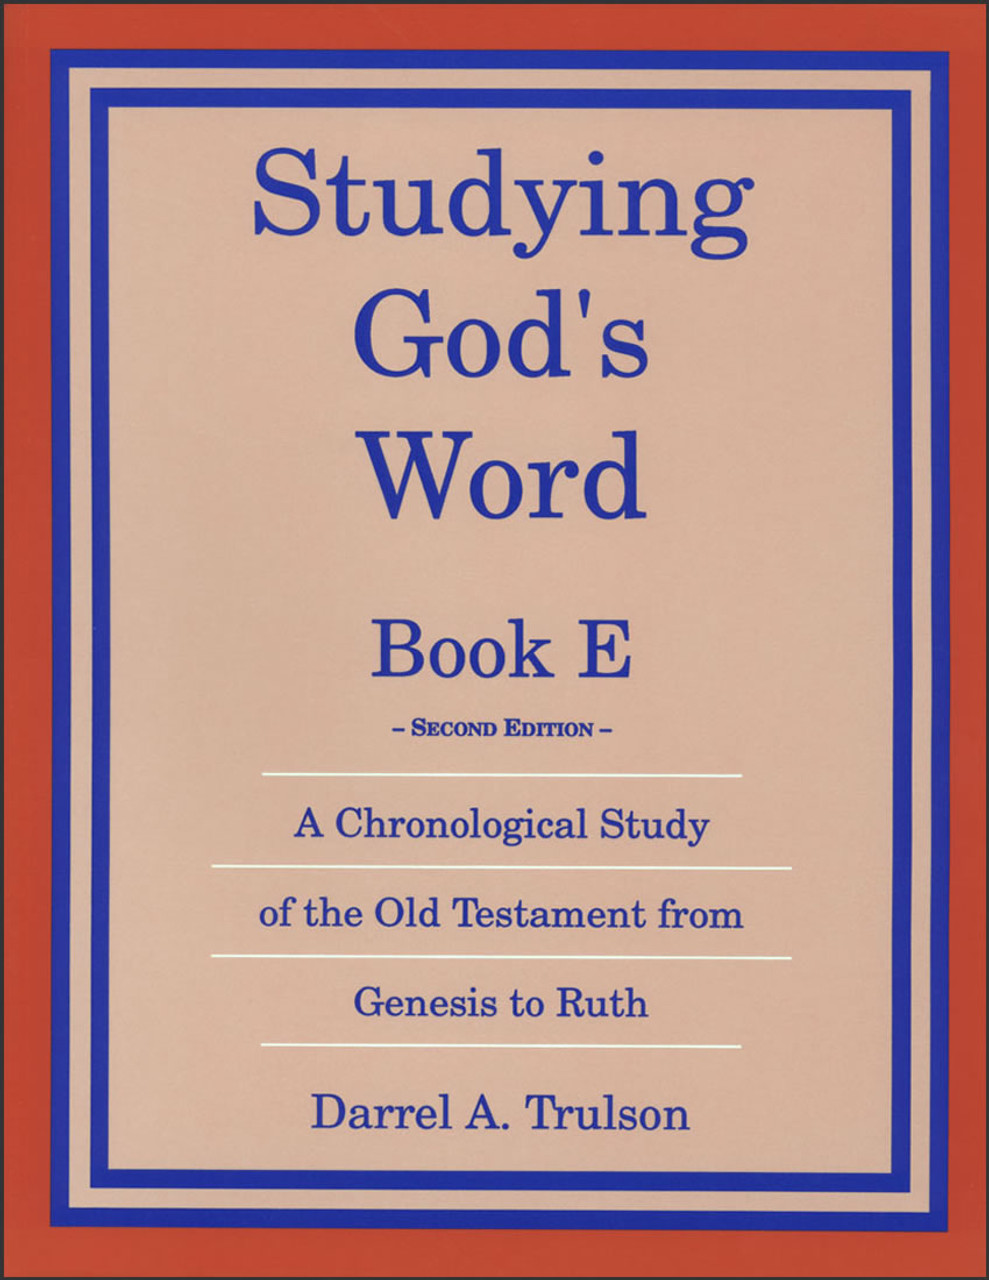 Studying God's Word: Book E, 2nd edition